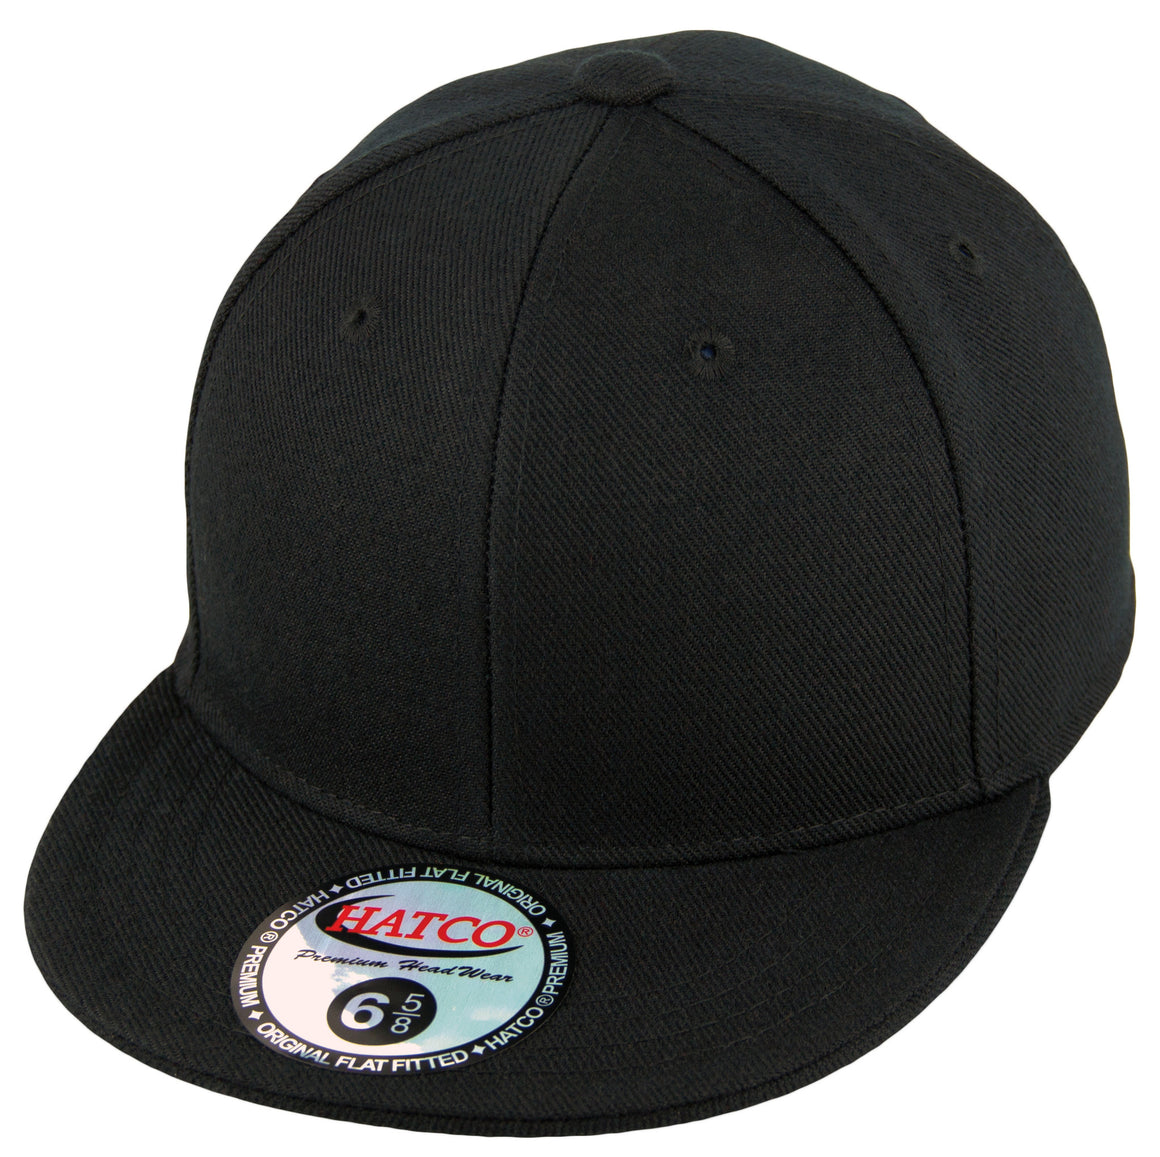 Blank Flat Fitted Cap - Kids - Black - HATCOcaps.com